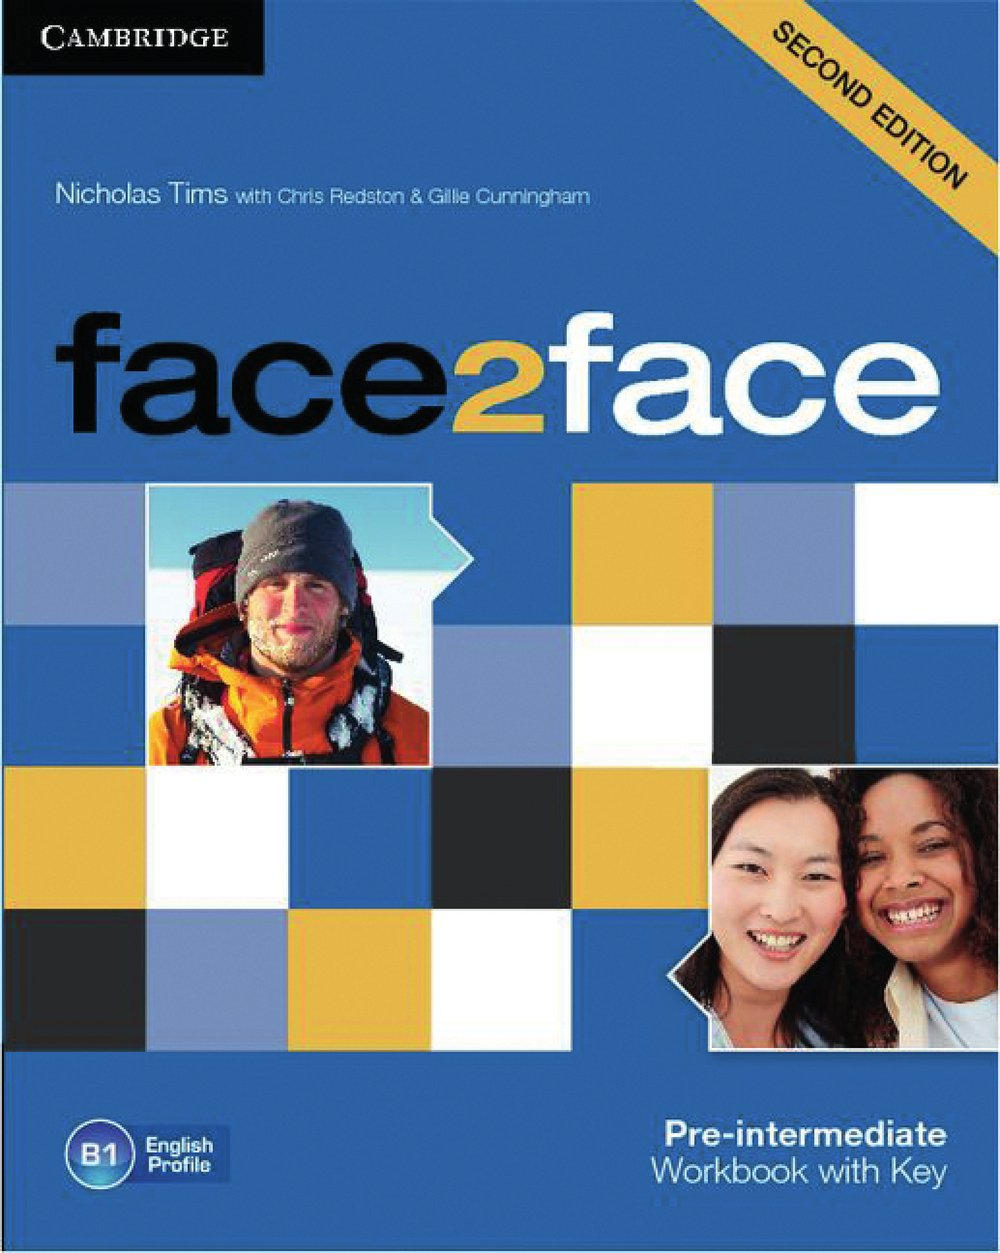 face2face (2nd edition): Workbook with Key